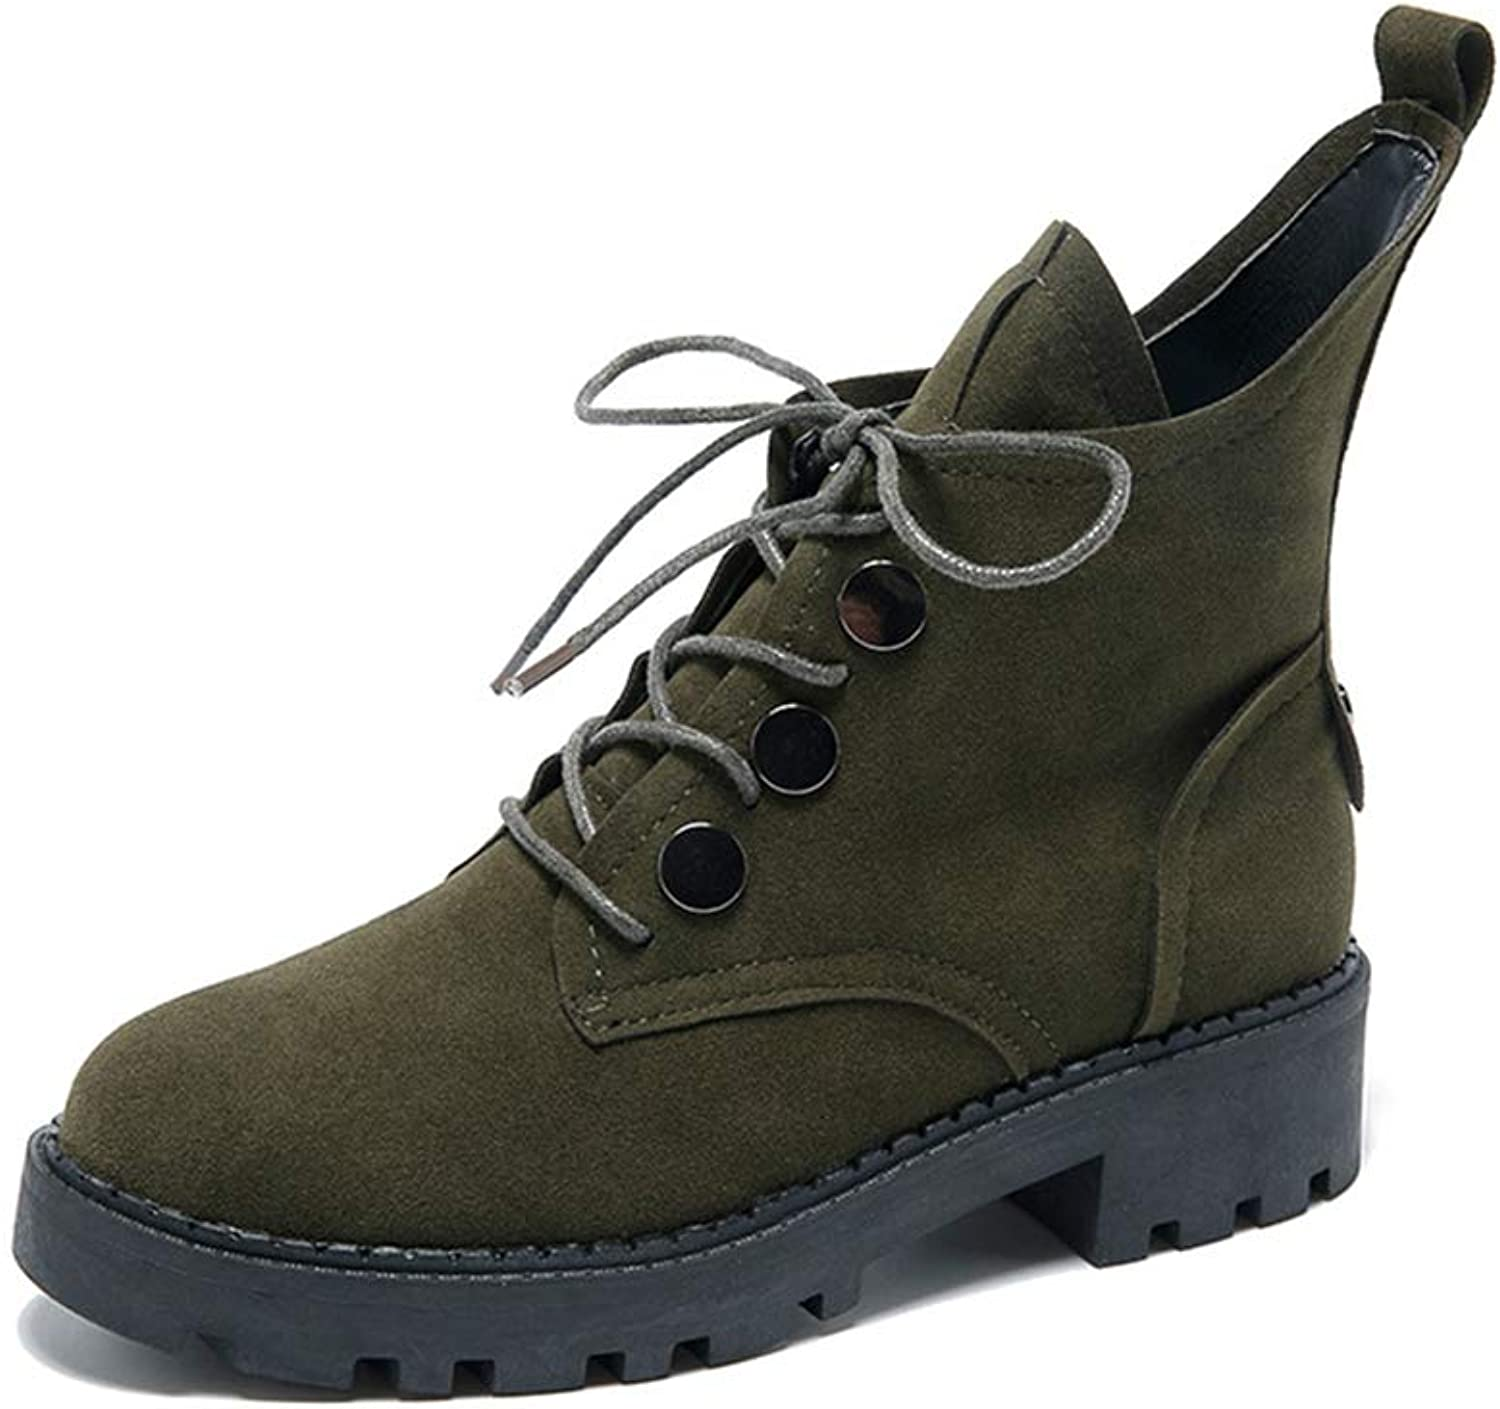 A-LING Women's Faux Suede Retro Motorcycle Boots Work Boots